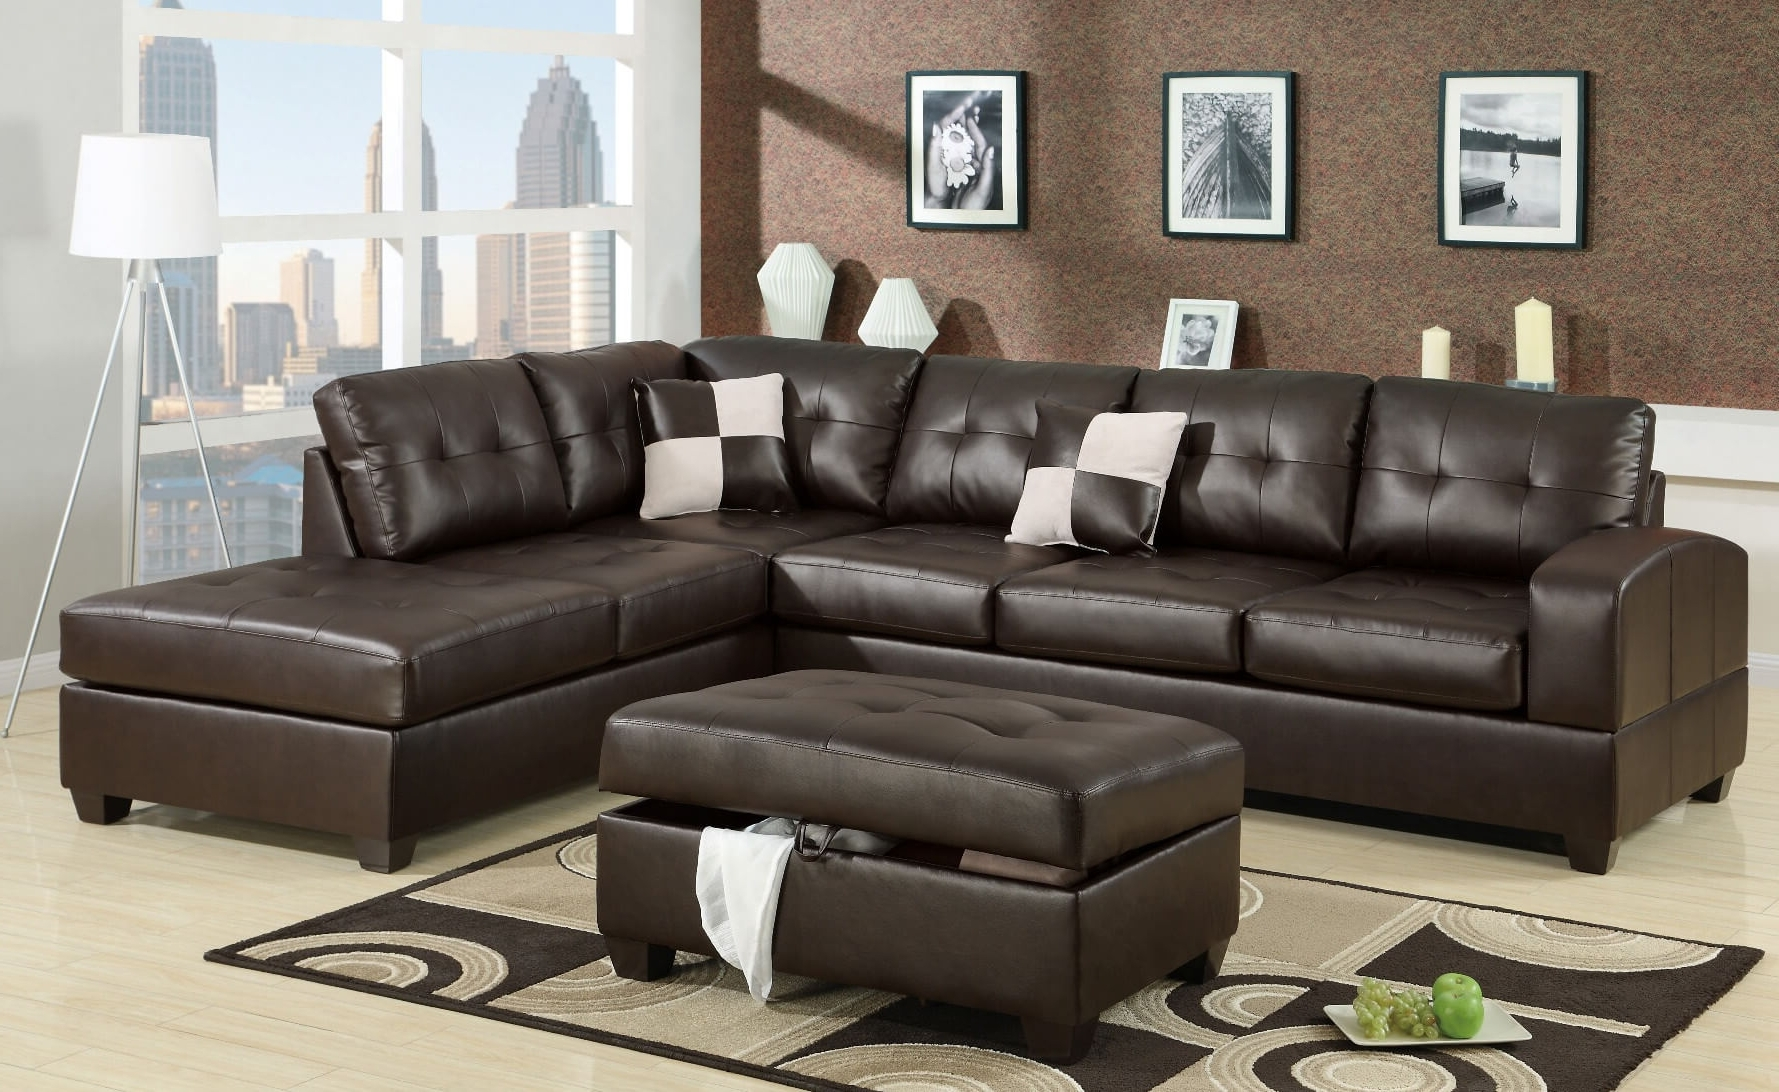 Sectional Sofas Under 1000 Within 2018 100 Awesome Sectional Sofas Under $1,000 (2018) (View 2 of 20)